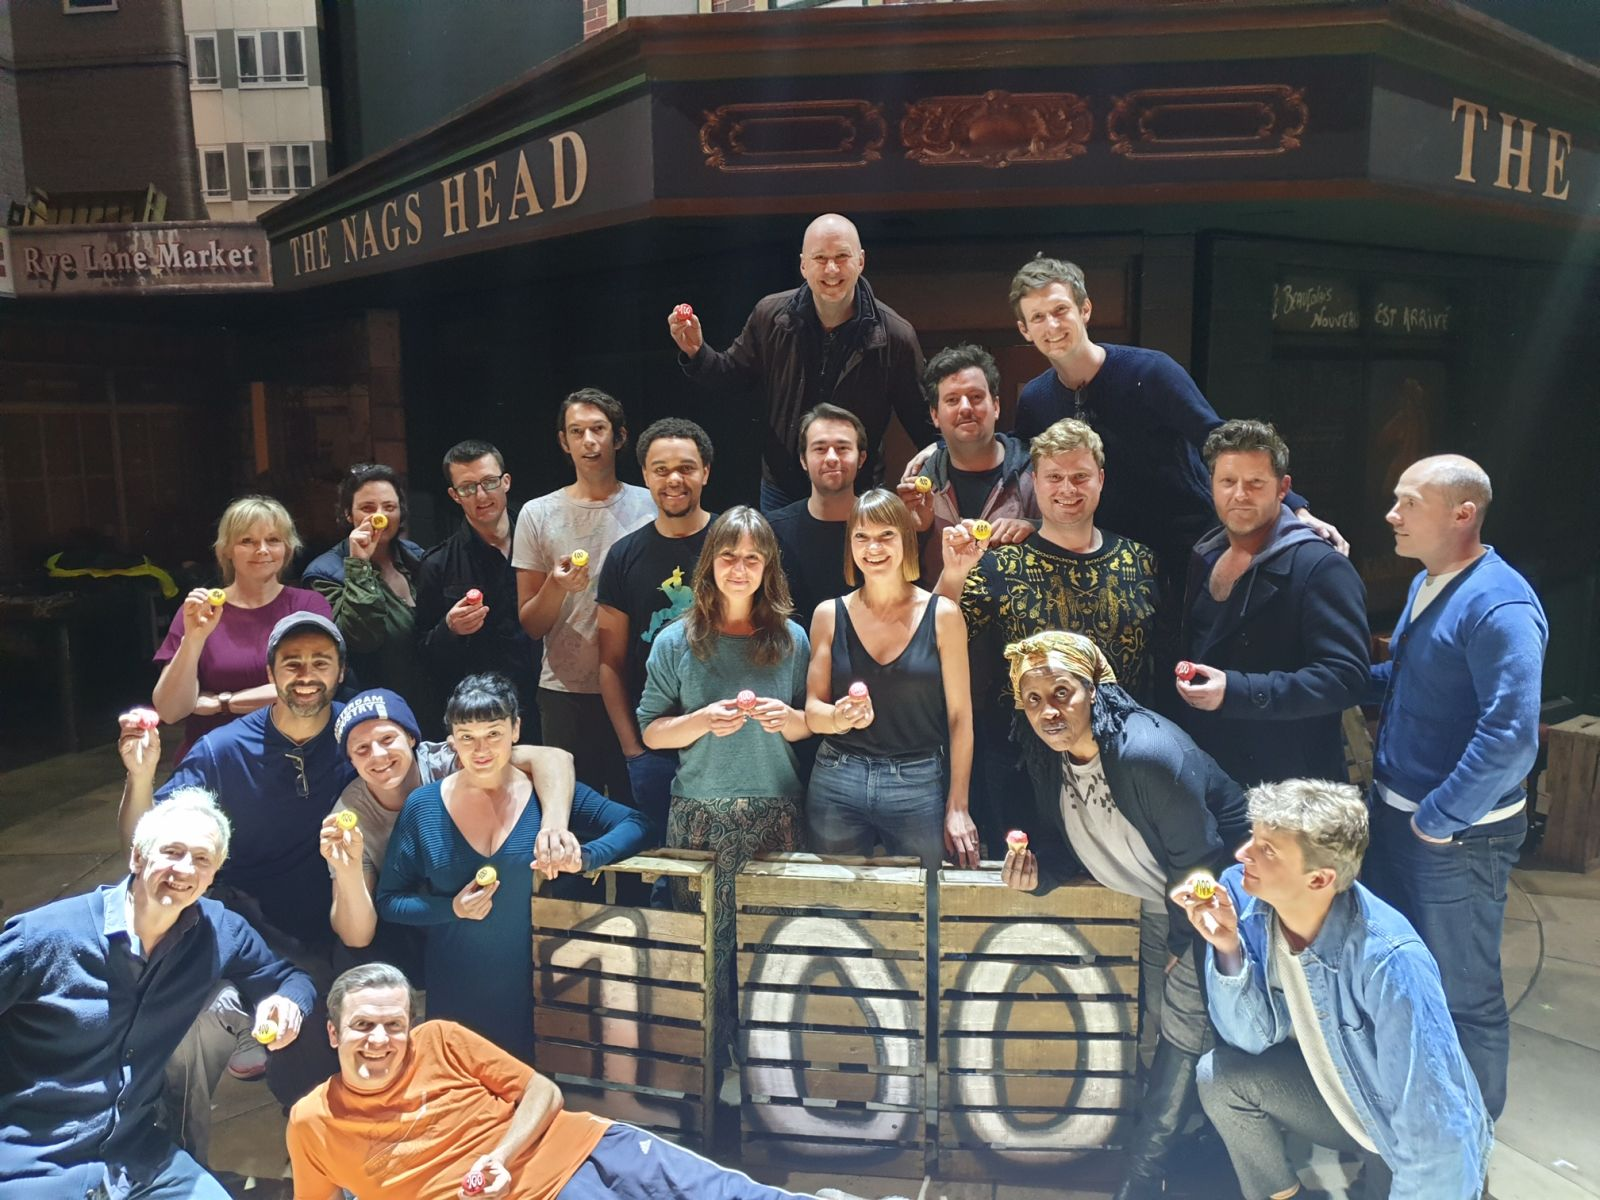 #OFAHMUSICAL CELEBRATES 100 SOLD OUT SHOWS!